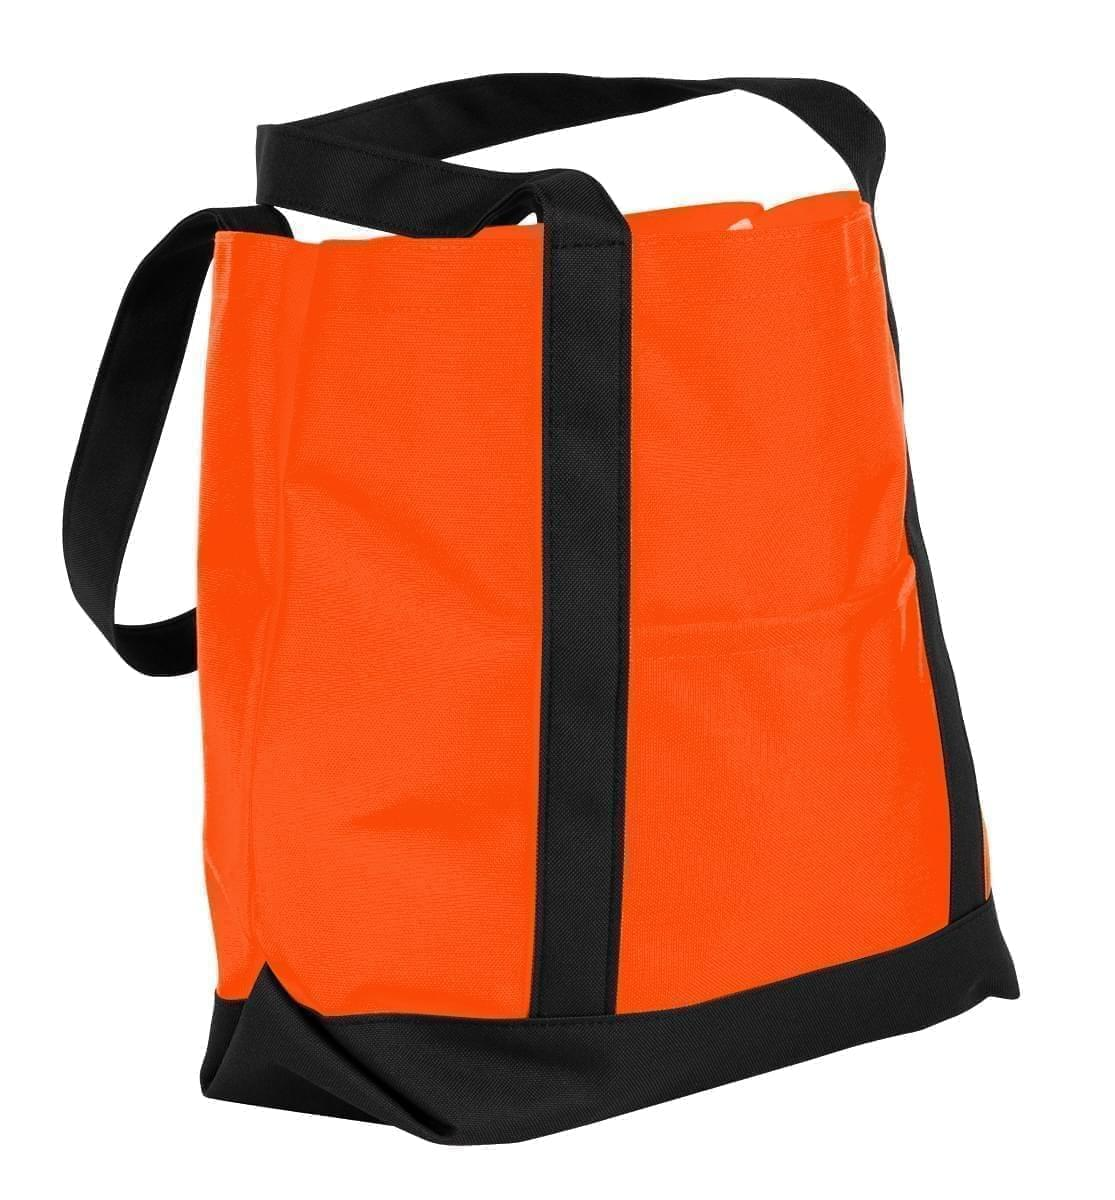 USA Made Nylon Poly Boat Tote Bags, Orange-Black, XAACL1UAXC